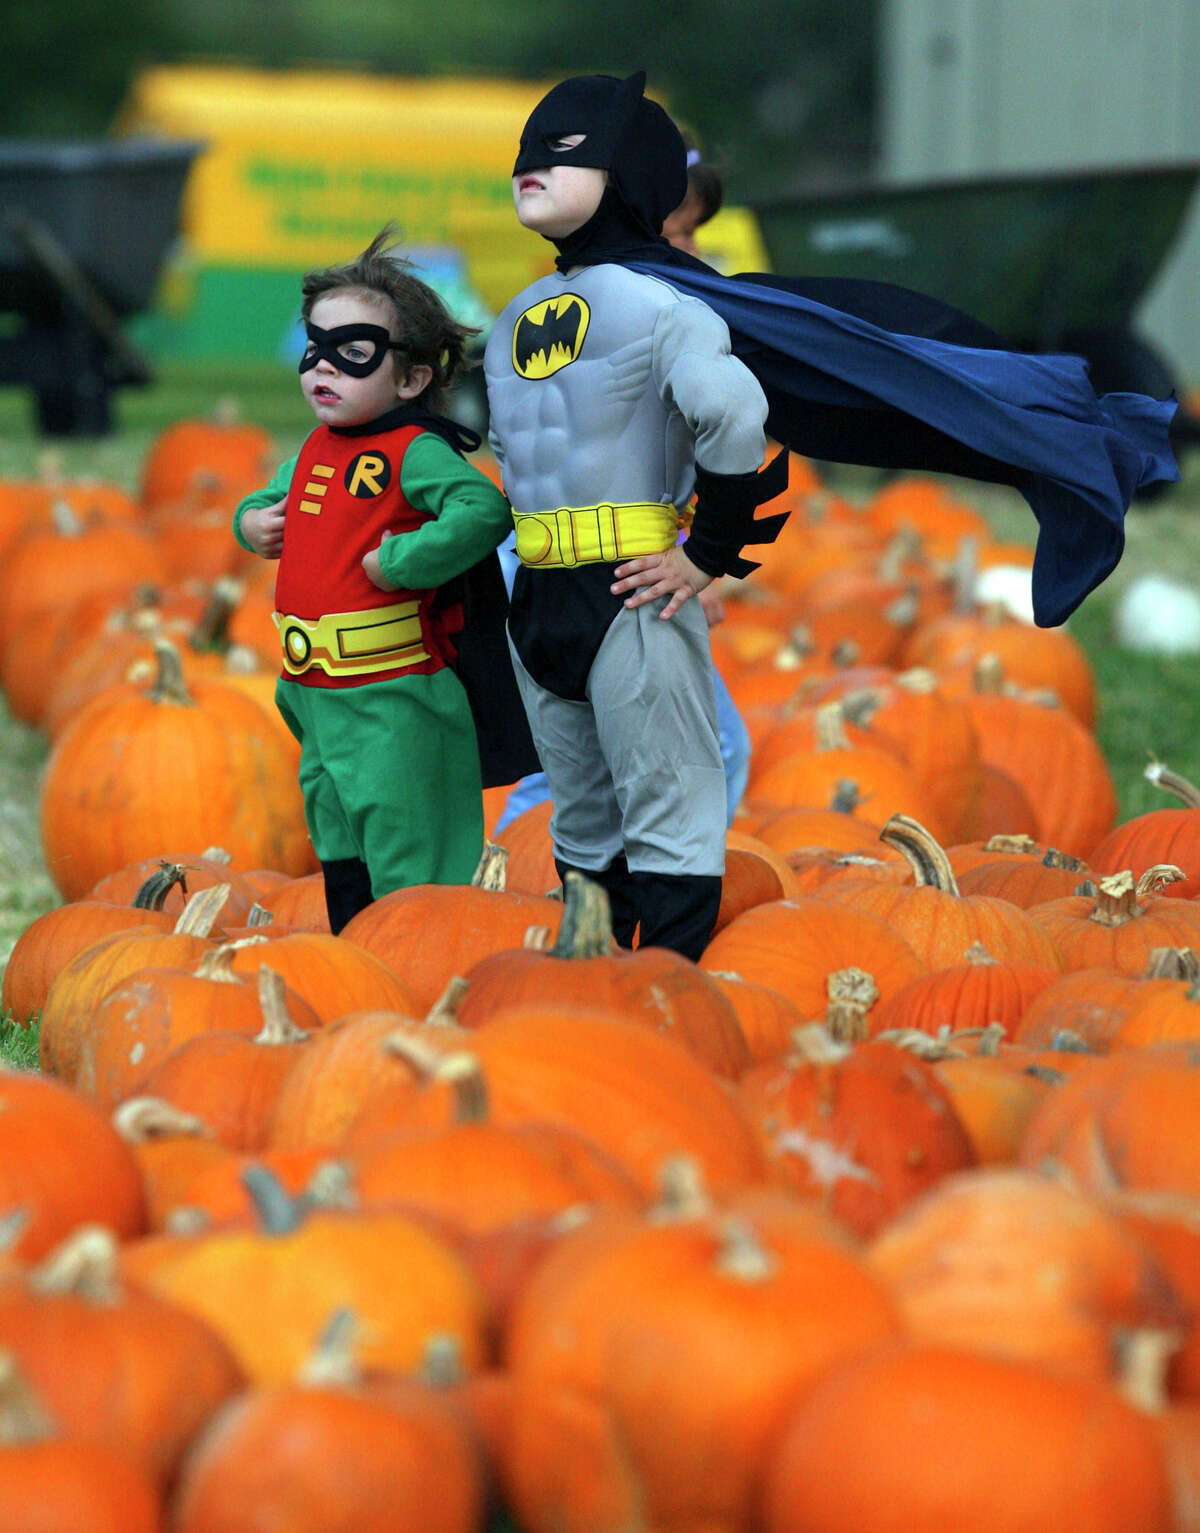 Two-year-old Westin Smith, a.k.a the Boy Wonder, and Shepherd Smith as Batman, aged 5, pose at Alamo Heights United Methodist Church's pumpkin patch, 825 E. Basse Road. The patch is open daily from 9 a.m.-7 p.m., through Oct. 31. Contact is through the website.